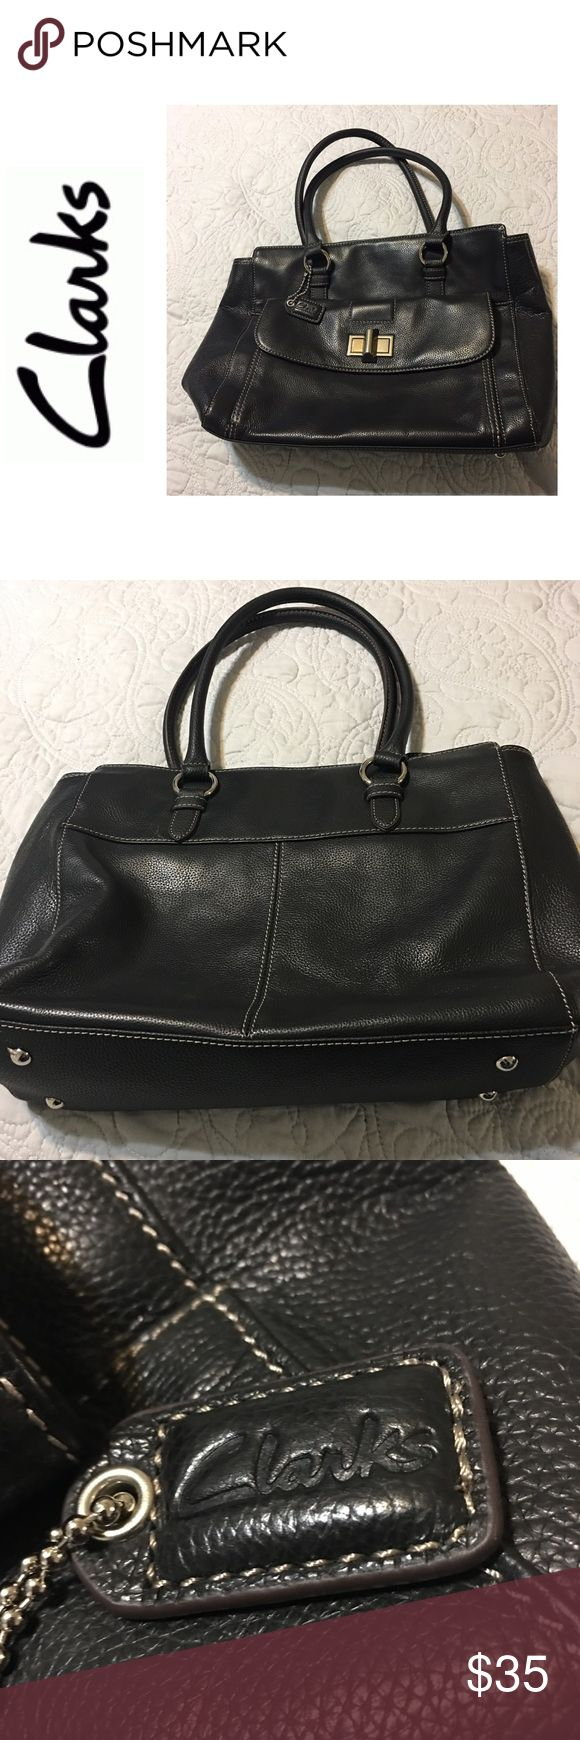 Clarks Large Leather Tote Genuine Leather  Large Tote 4 feet at bottom of bag 2 rolled leather handles One Large Flap pocket on front of bag Inside 1 zipper and 2 slip pockets  Silver accents H 10 x W 16 x D 4 Drop 8.                              Price is Negotiable Clarks Bags Totes